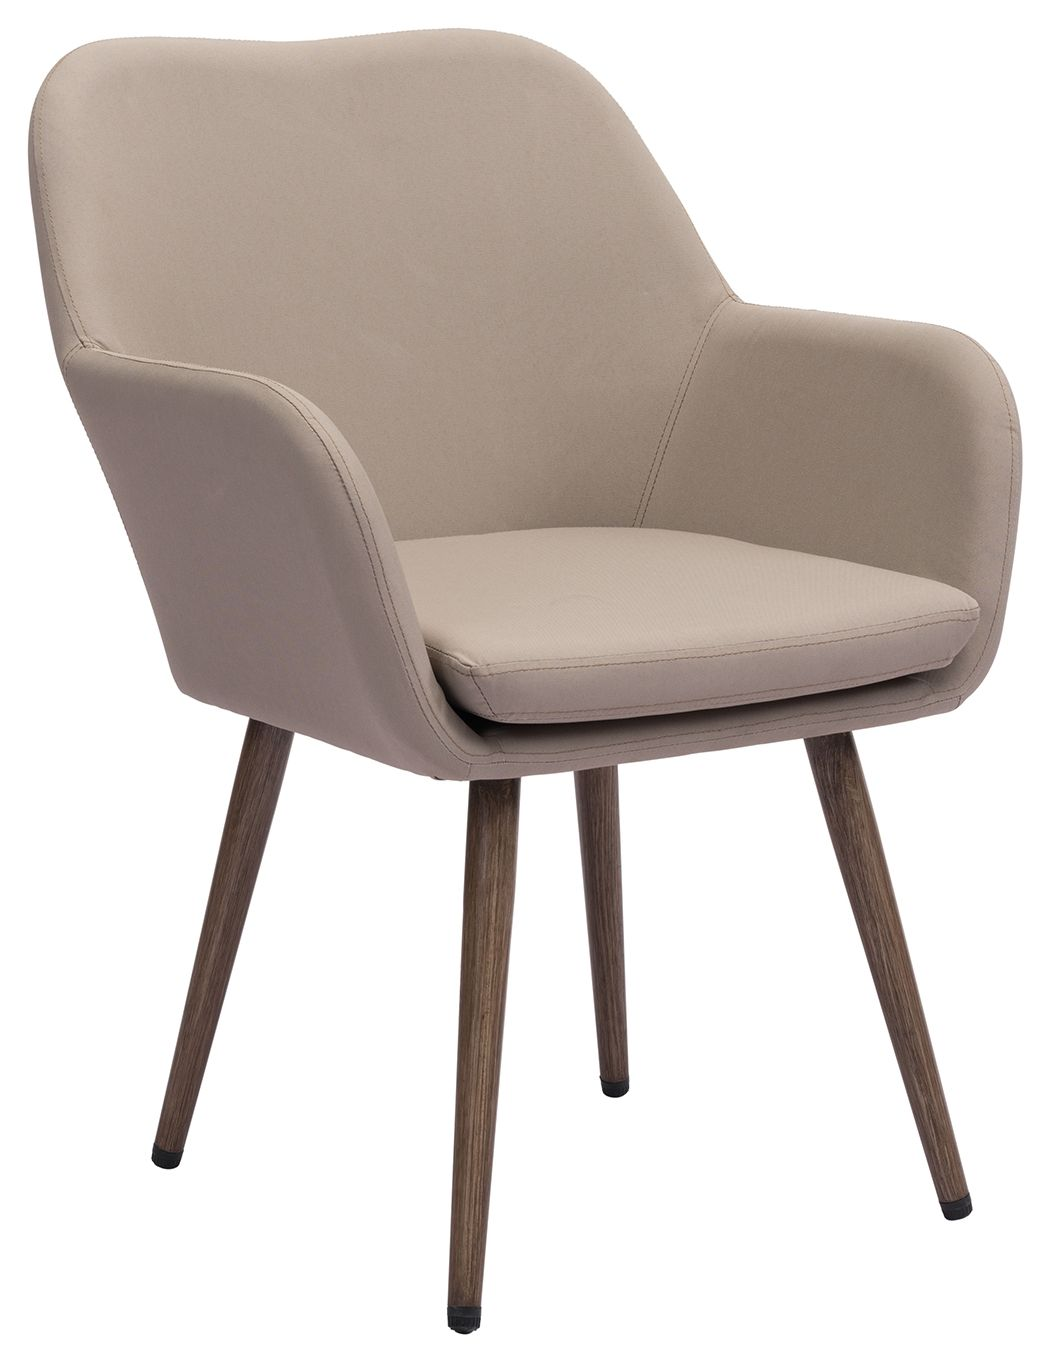 Patio Dining Chair Taupe Products In 2019 Modern Outdoor